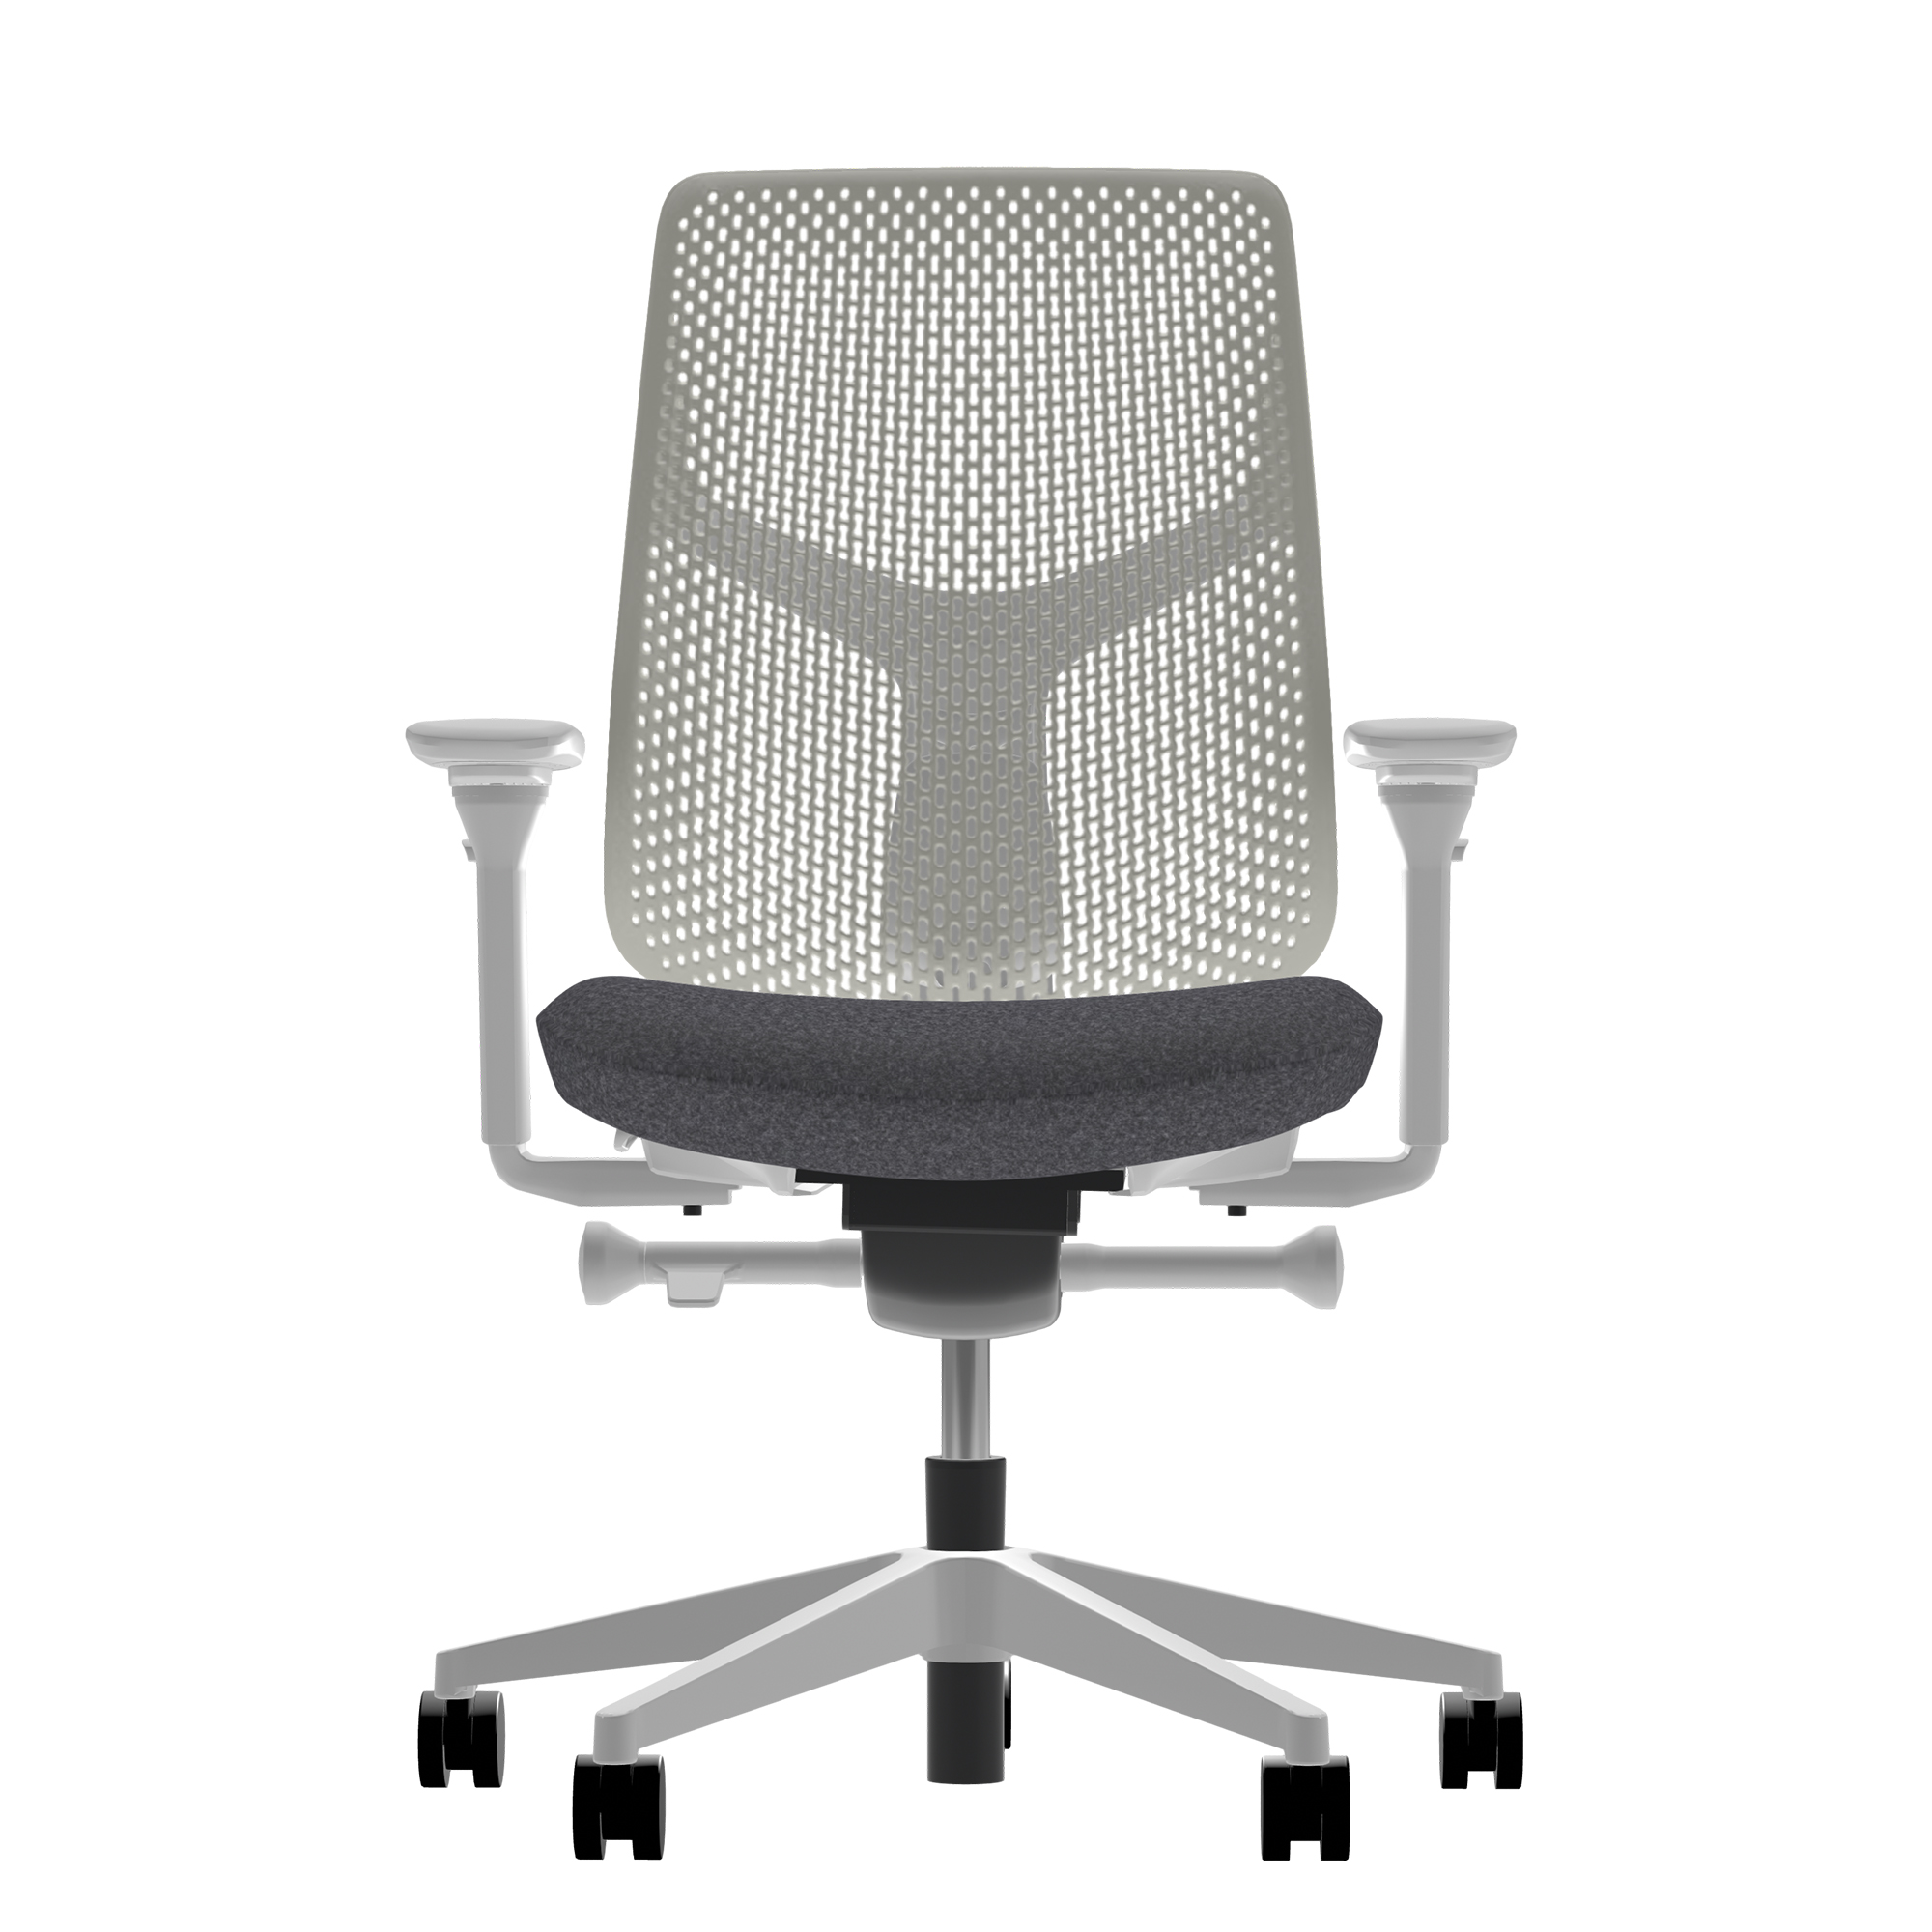 Verus Chair - Triflex Polymer Granite